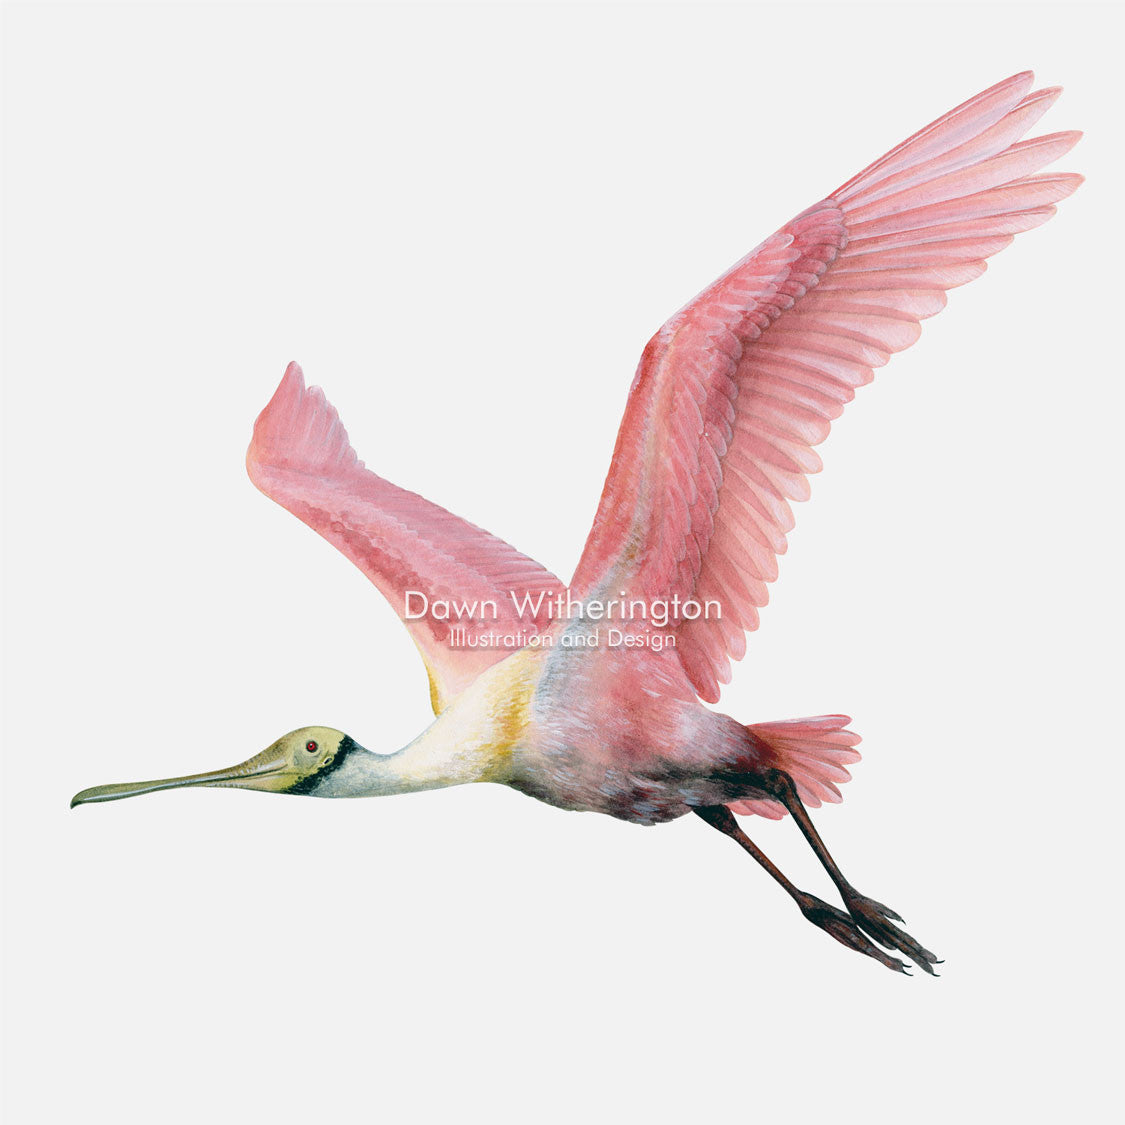 This beautiful illustration of a roseate spoonbill, Platalea ajaja, in flight, is biologically accurate in detail.